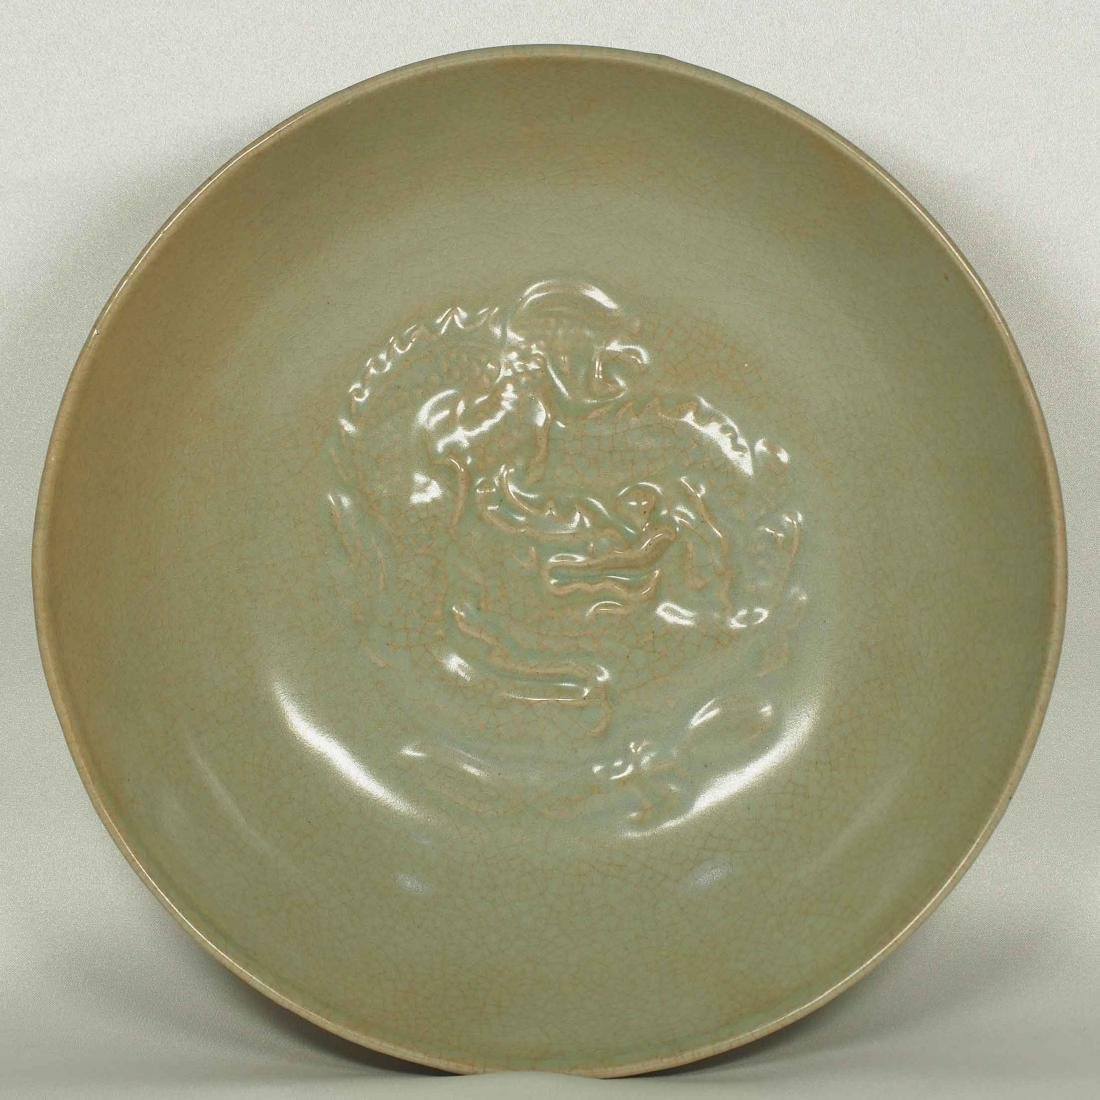 Celadon Bowl with Dragon Design, Northern Song Dynasty